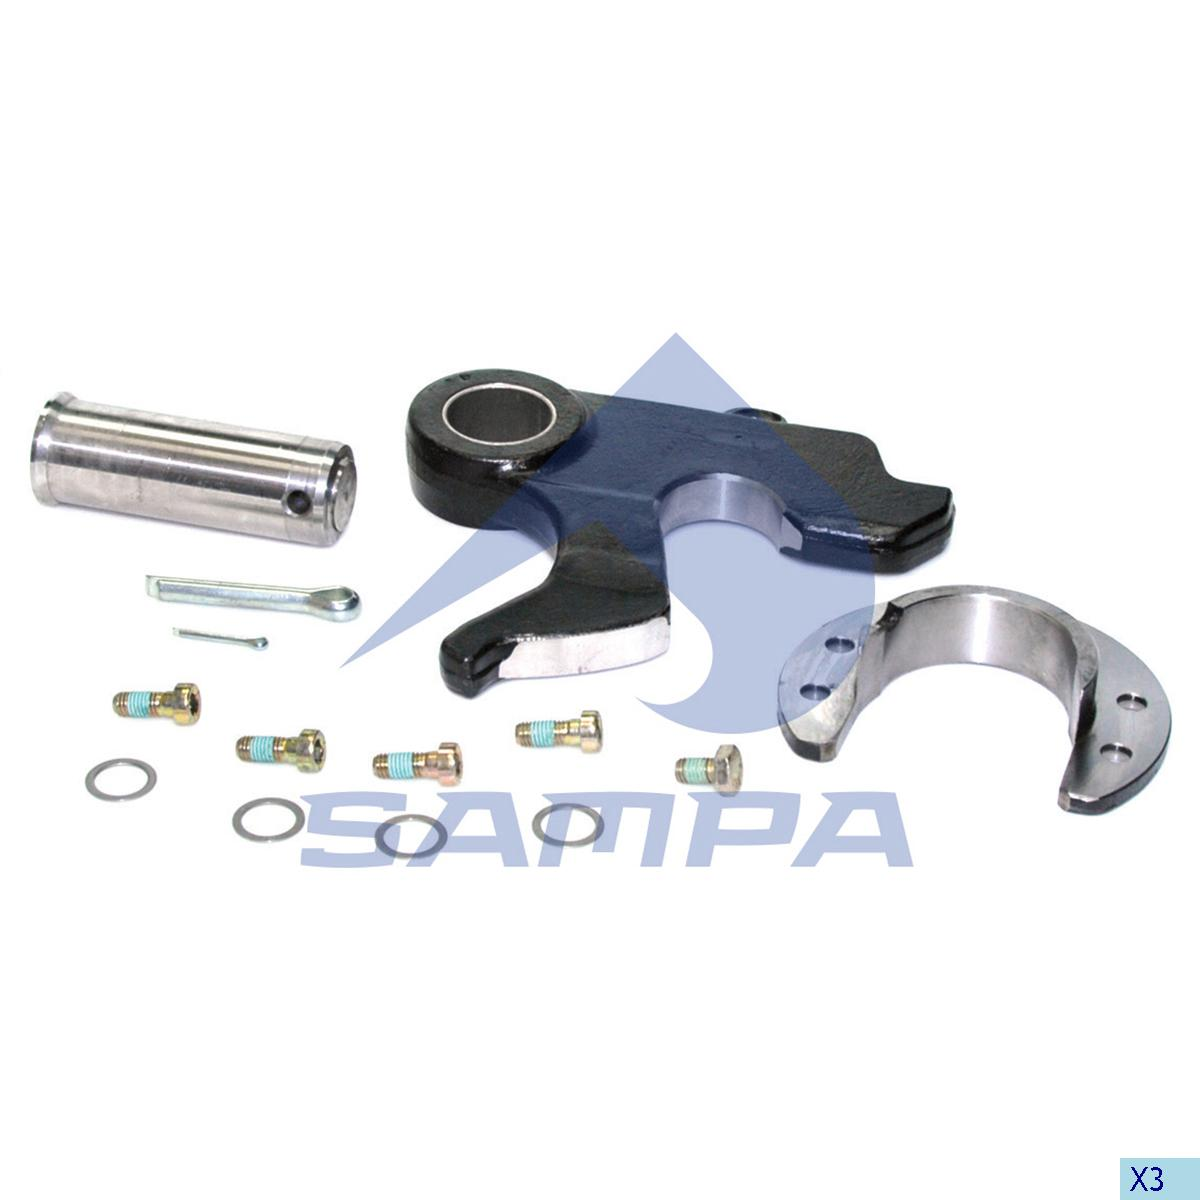 Repair Kit, Fifth Wheel, Georg Fischer, Complementary Equipment